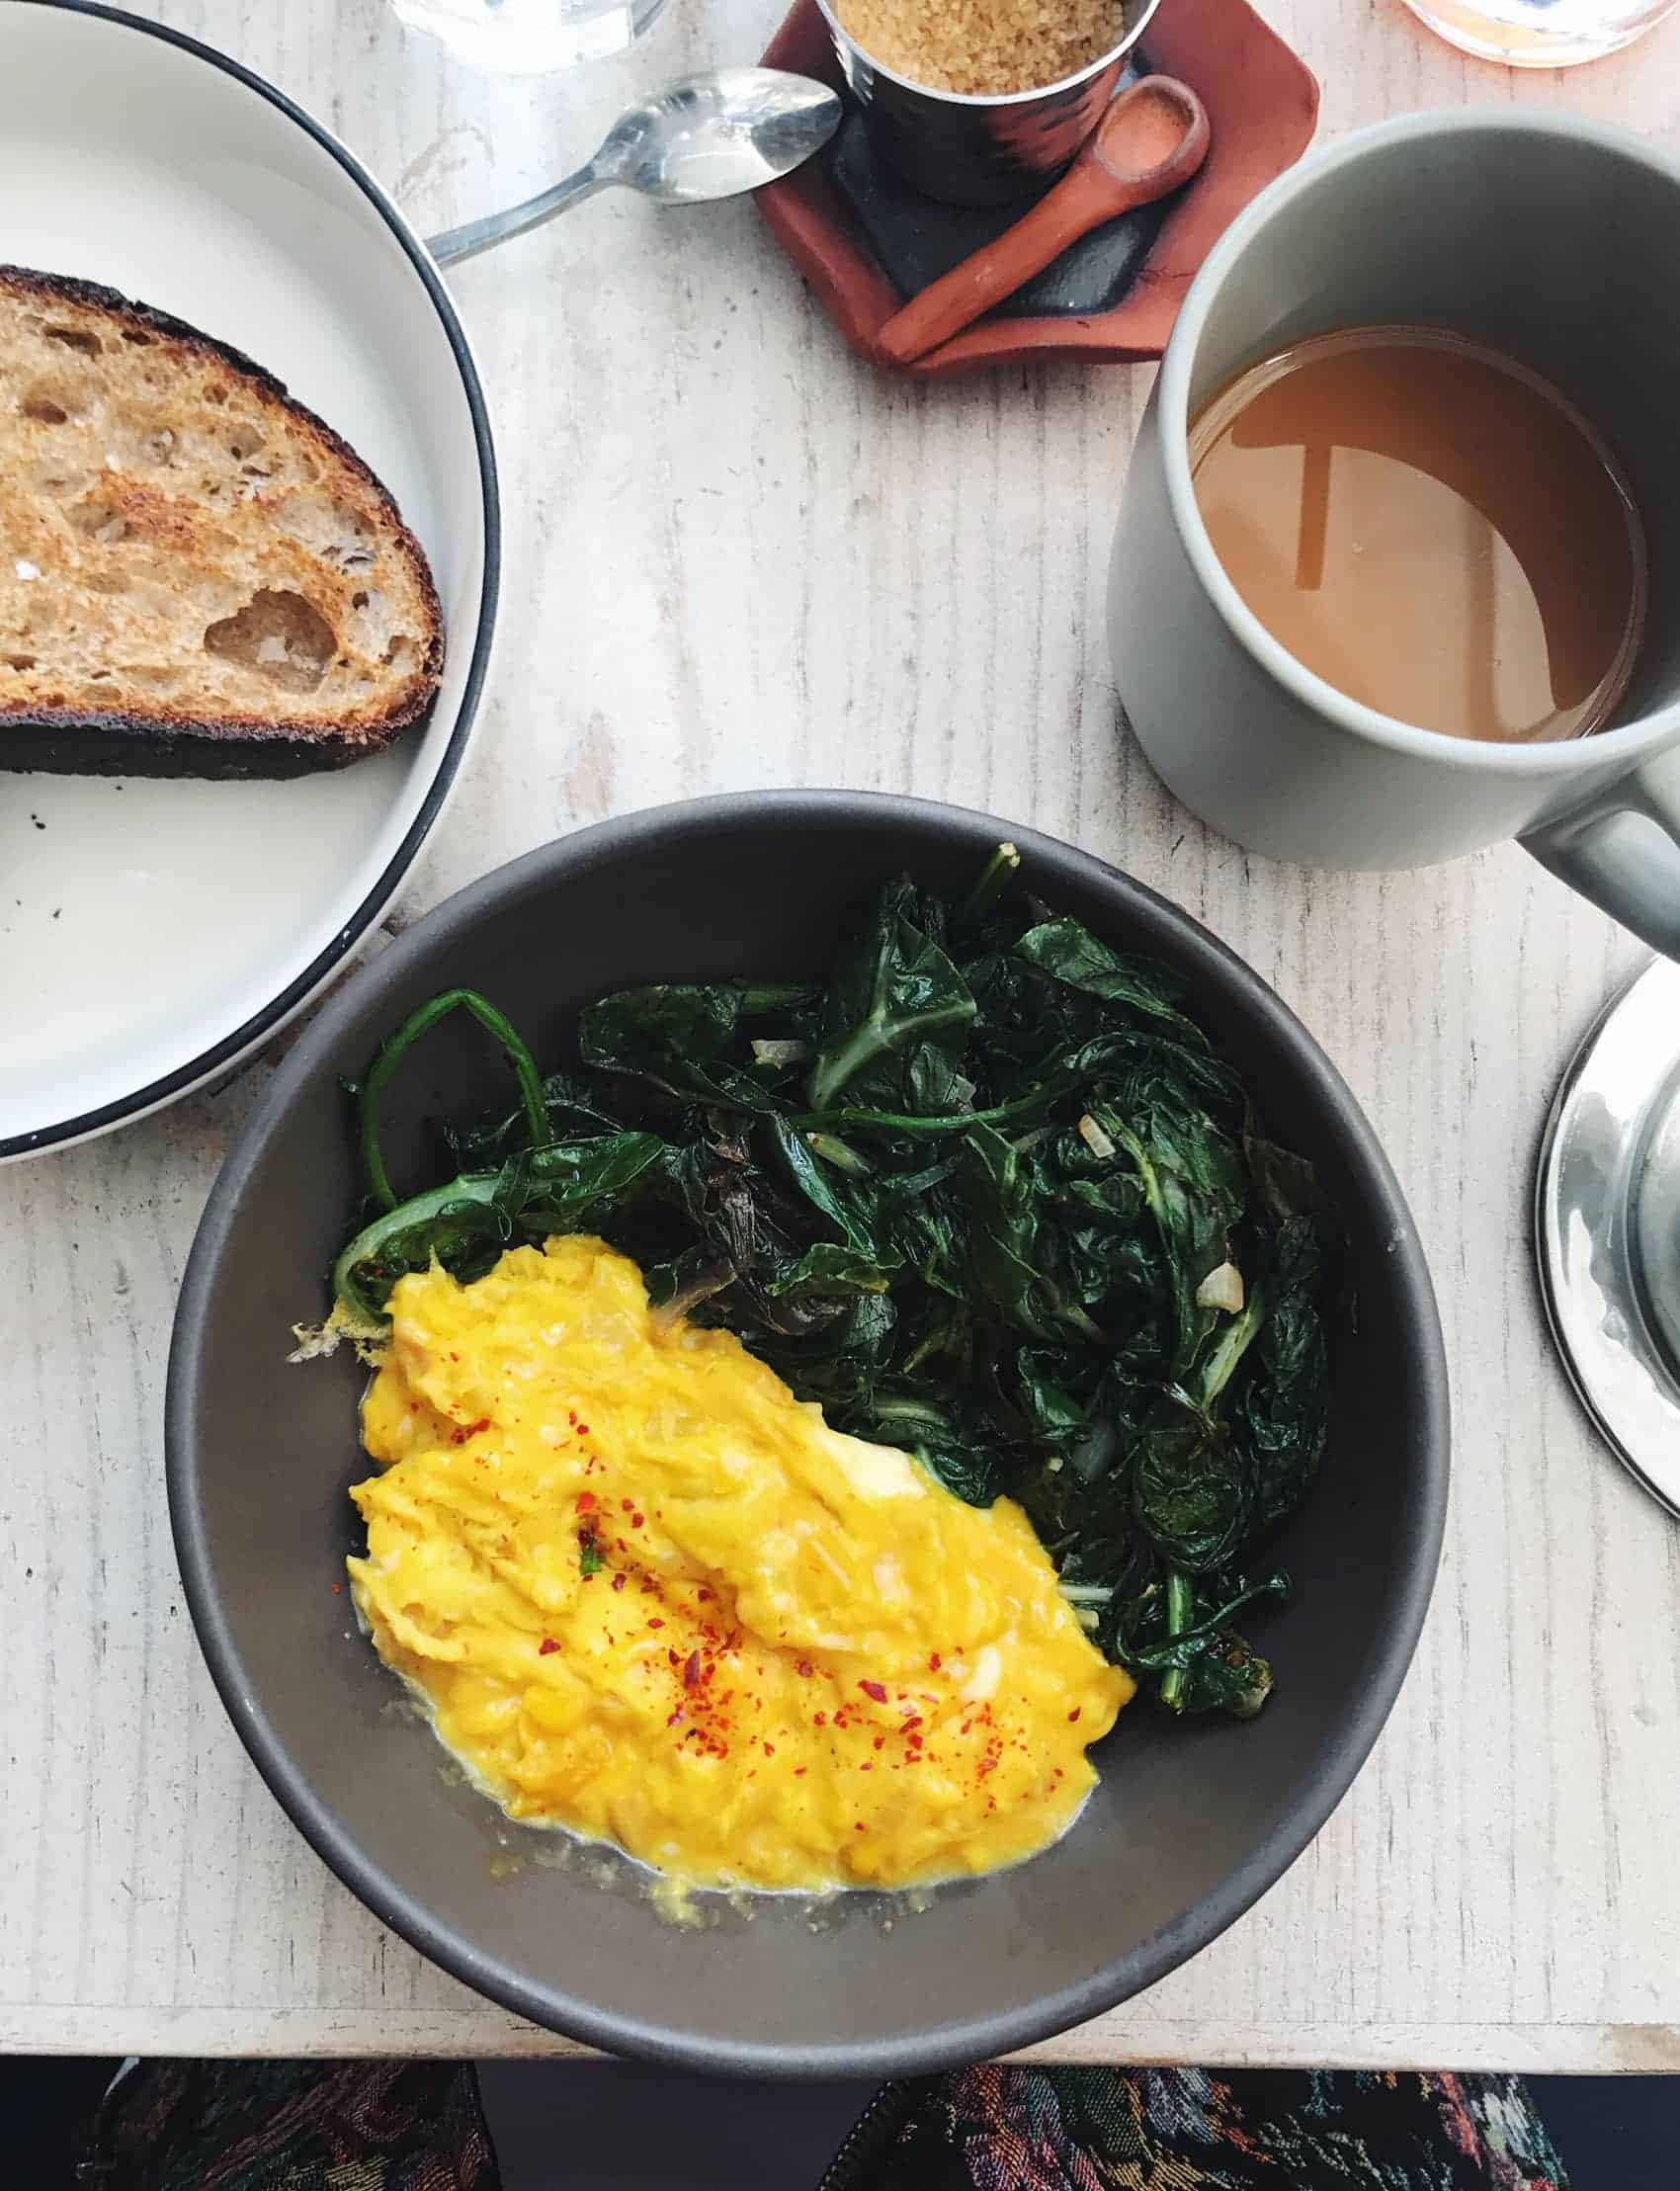 Soft-scrambled eggs in a bowl with sauteed greens | Botanica restaurant in Los Angeles